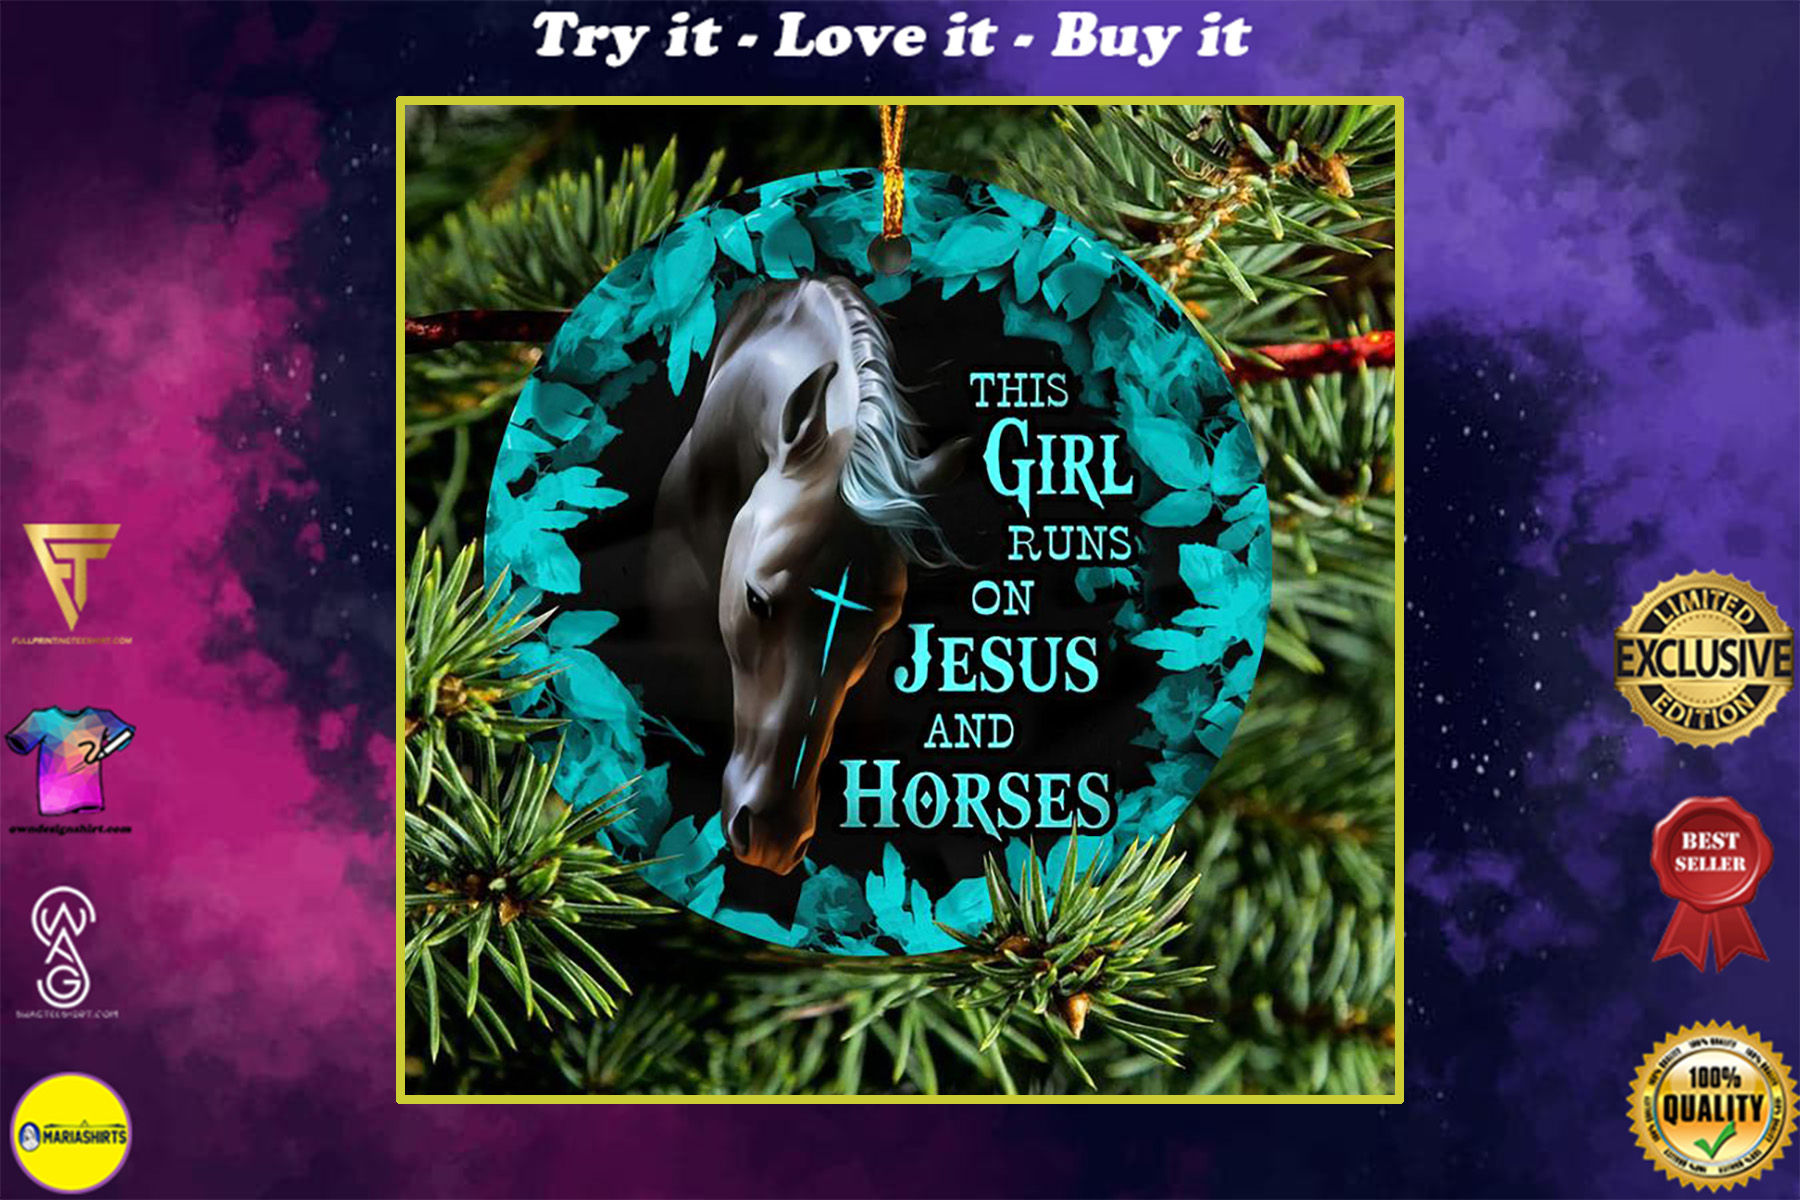 the girl runs on Jesus and horses christmas ornament